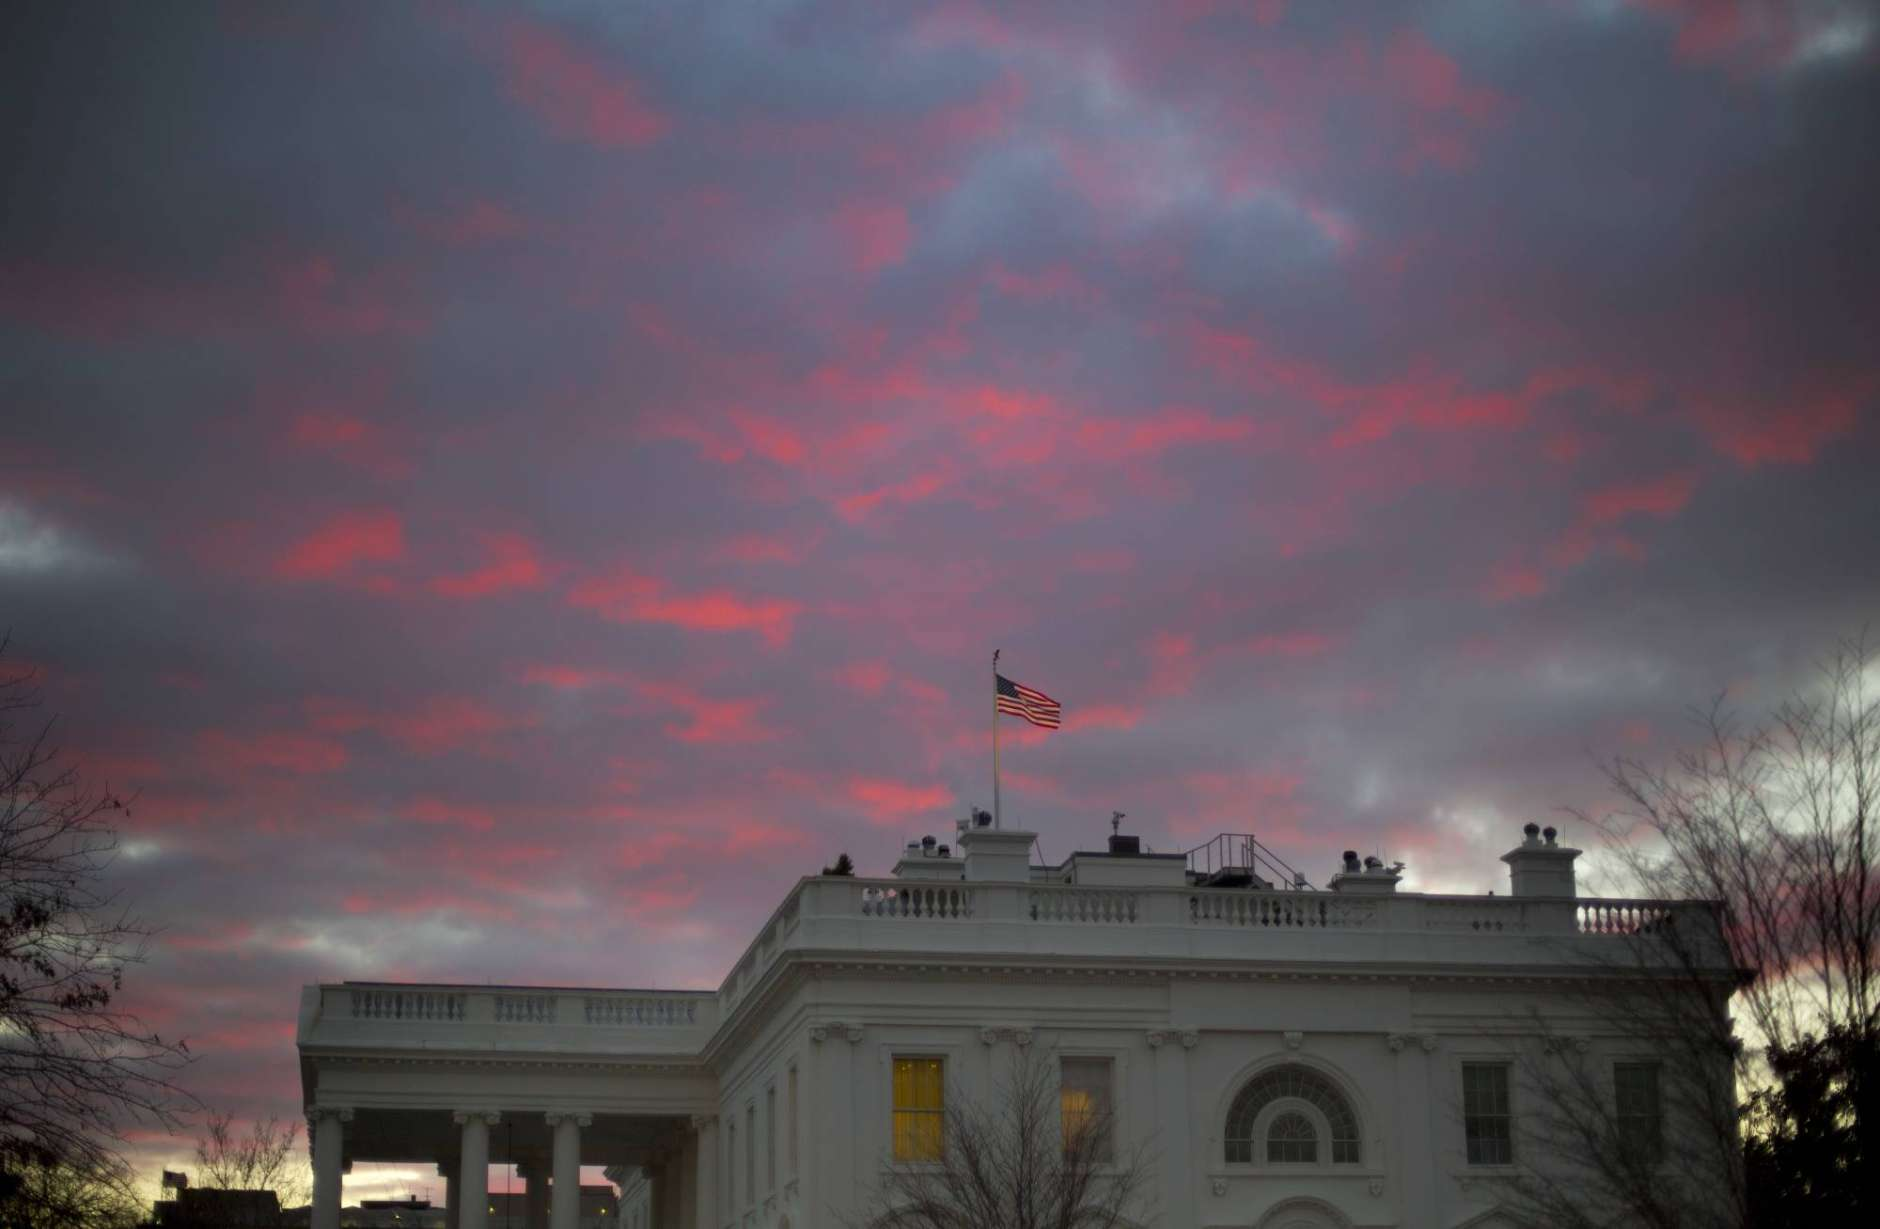 FILE - In this Jan. 27, 2017, file photo, day breaks over the White House in Washington. Two weeks into his presidency, Donald Trump has thrown Washington into a state of anxious uncertainty. Policy pronouncements sprout up from the White House in rapid succession. Some have far-reaching implications, most notably Trump's temporary refugee and immigration ban, but others disappear without explanation, including planned executive actions on cybersecurity and the president's demand for an investigation into unsubstantiated voter fraud. The day's agenda can quickly be overtaken by presidential tweets, which often start flashing on smartphones just as the nation's capital is waking up. (AP Photo/Pablo Martinez Monsivais, File)